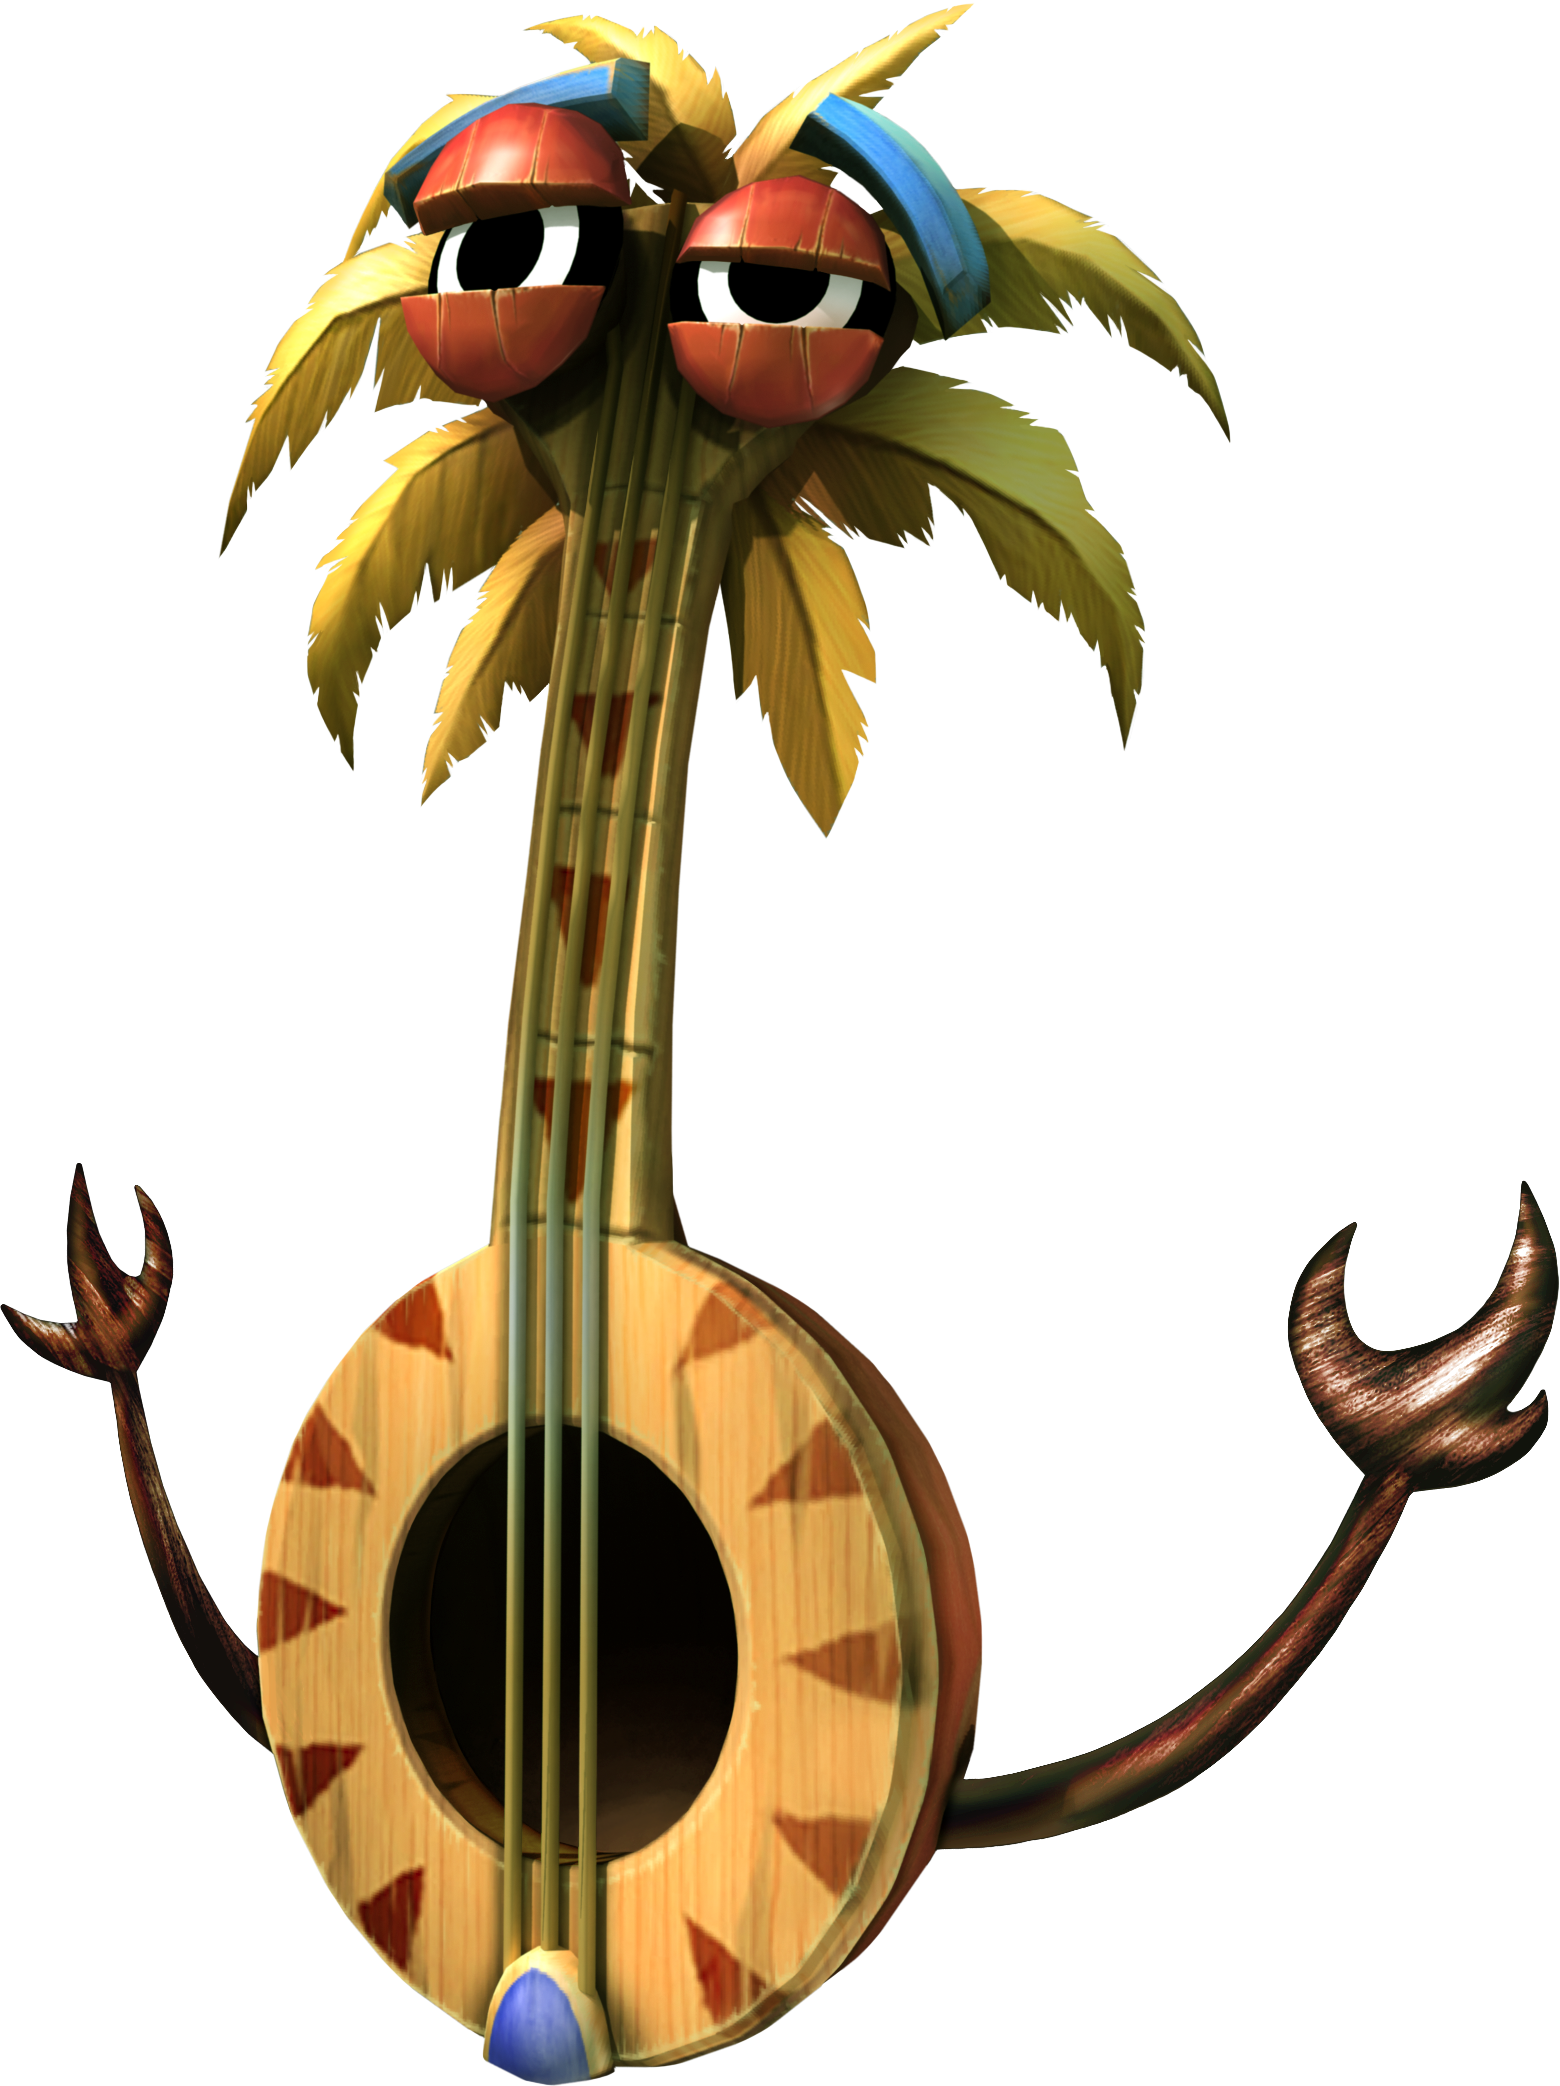 Banjo Tiki | Donkey kong, Banjos and Donkeys